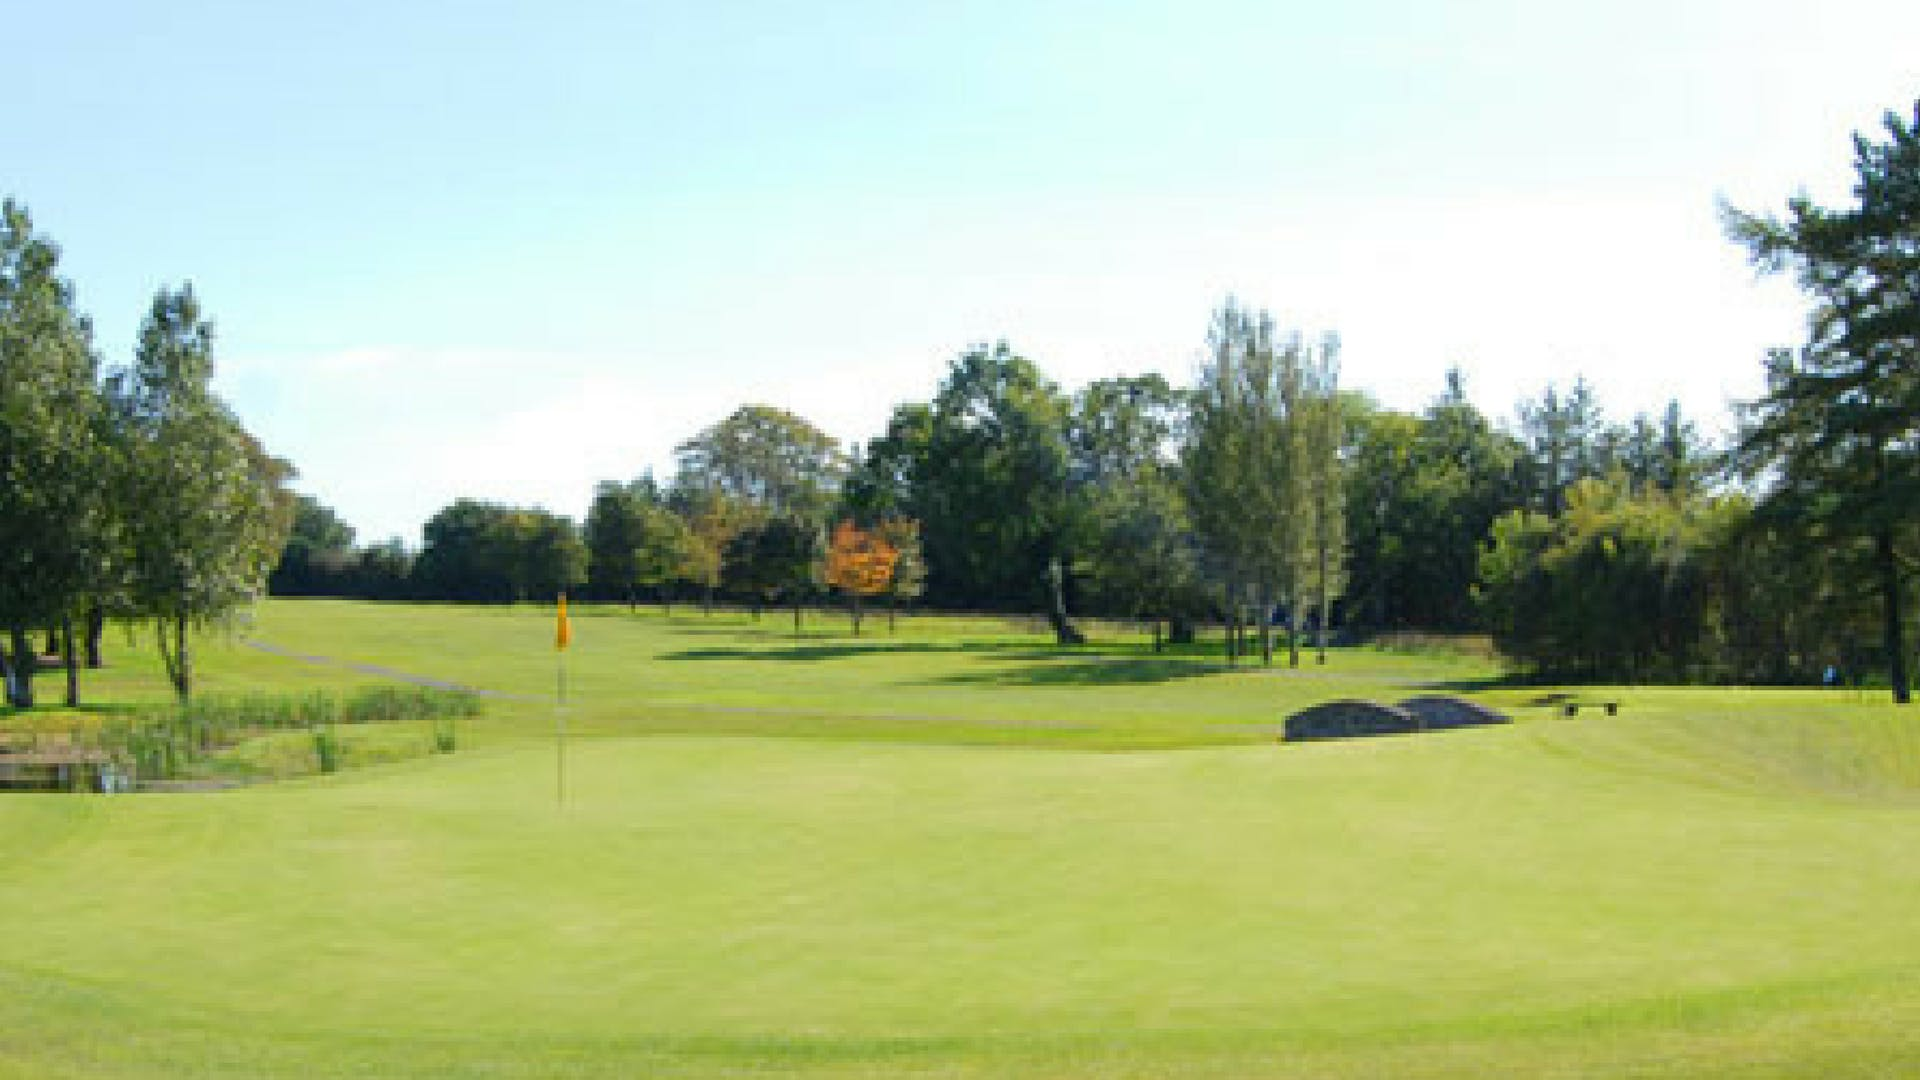 Golfing at Roscommon Golf Club at Gleesons Restaurant & Rooms, Roscommon